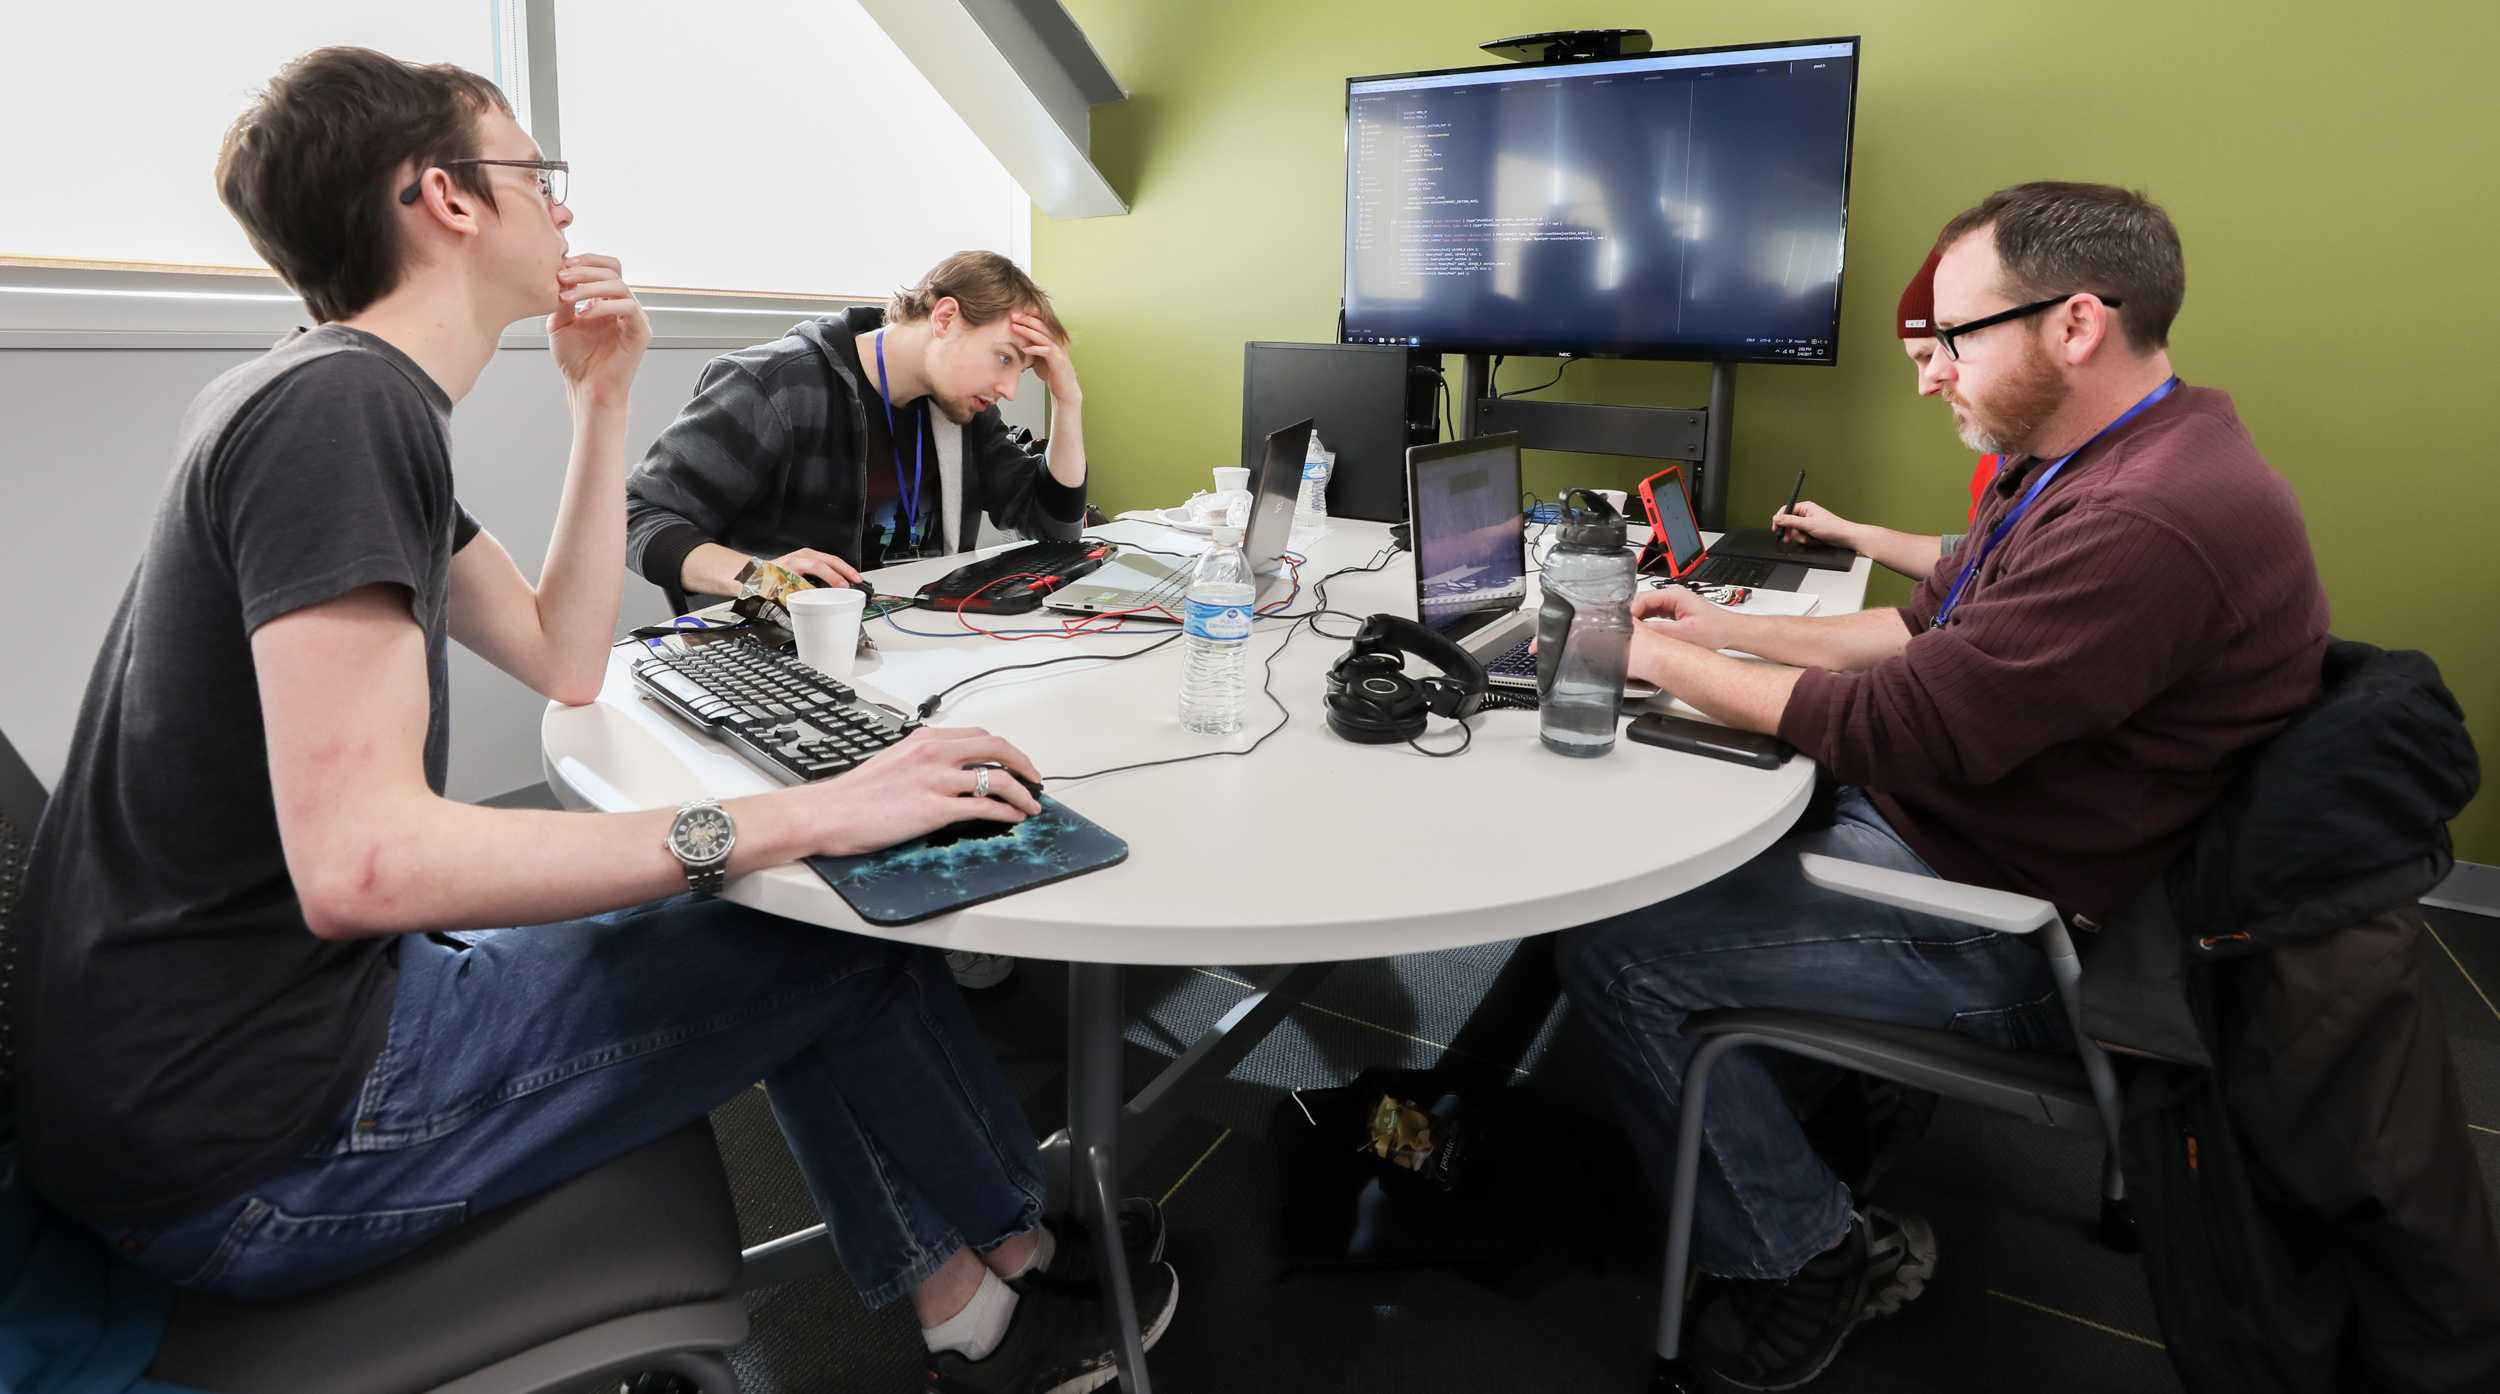 From left: Jesse Pritchard, Brandon Jones, Steven Reust and Nathan Branded work on coding a game from start to finish at the Wichita eSports Convention. The group was competing in the ICT Game Jam for a cash prize. (Feb. 5, 2017)